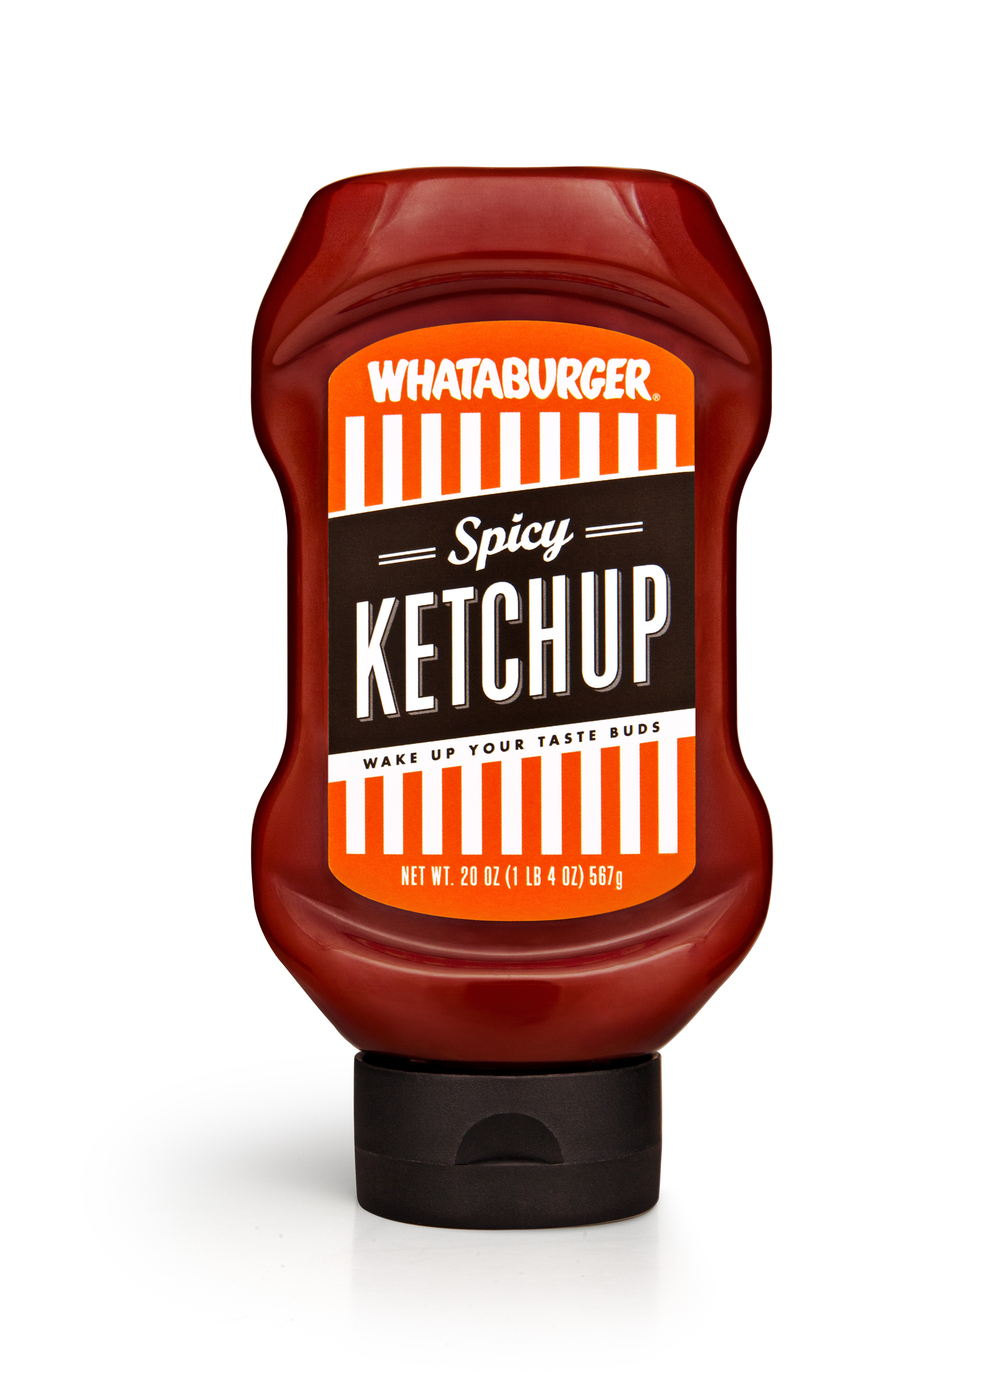 MCJ-14007-Whataburger-Spicy-Ketchup.jpg